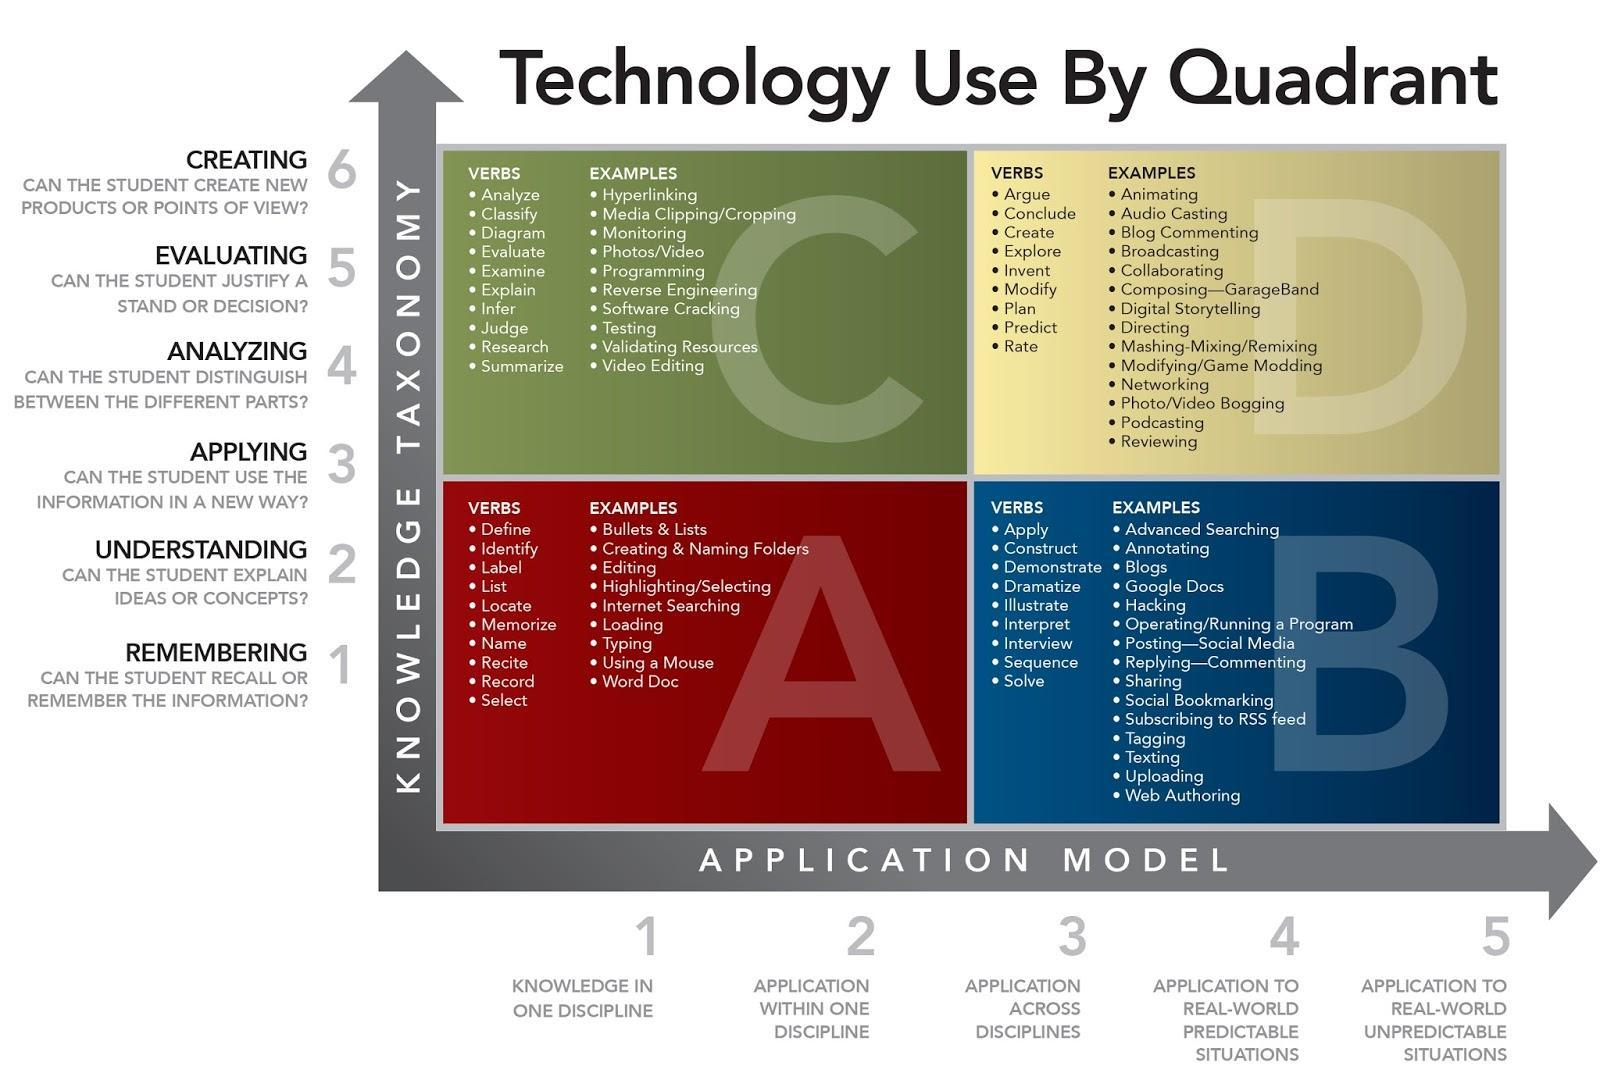 Technology Use By Quadrant